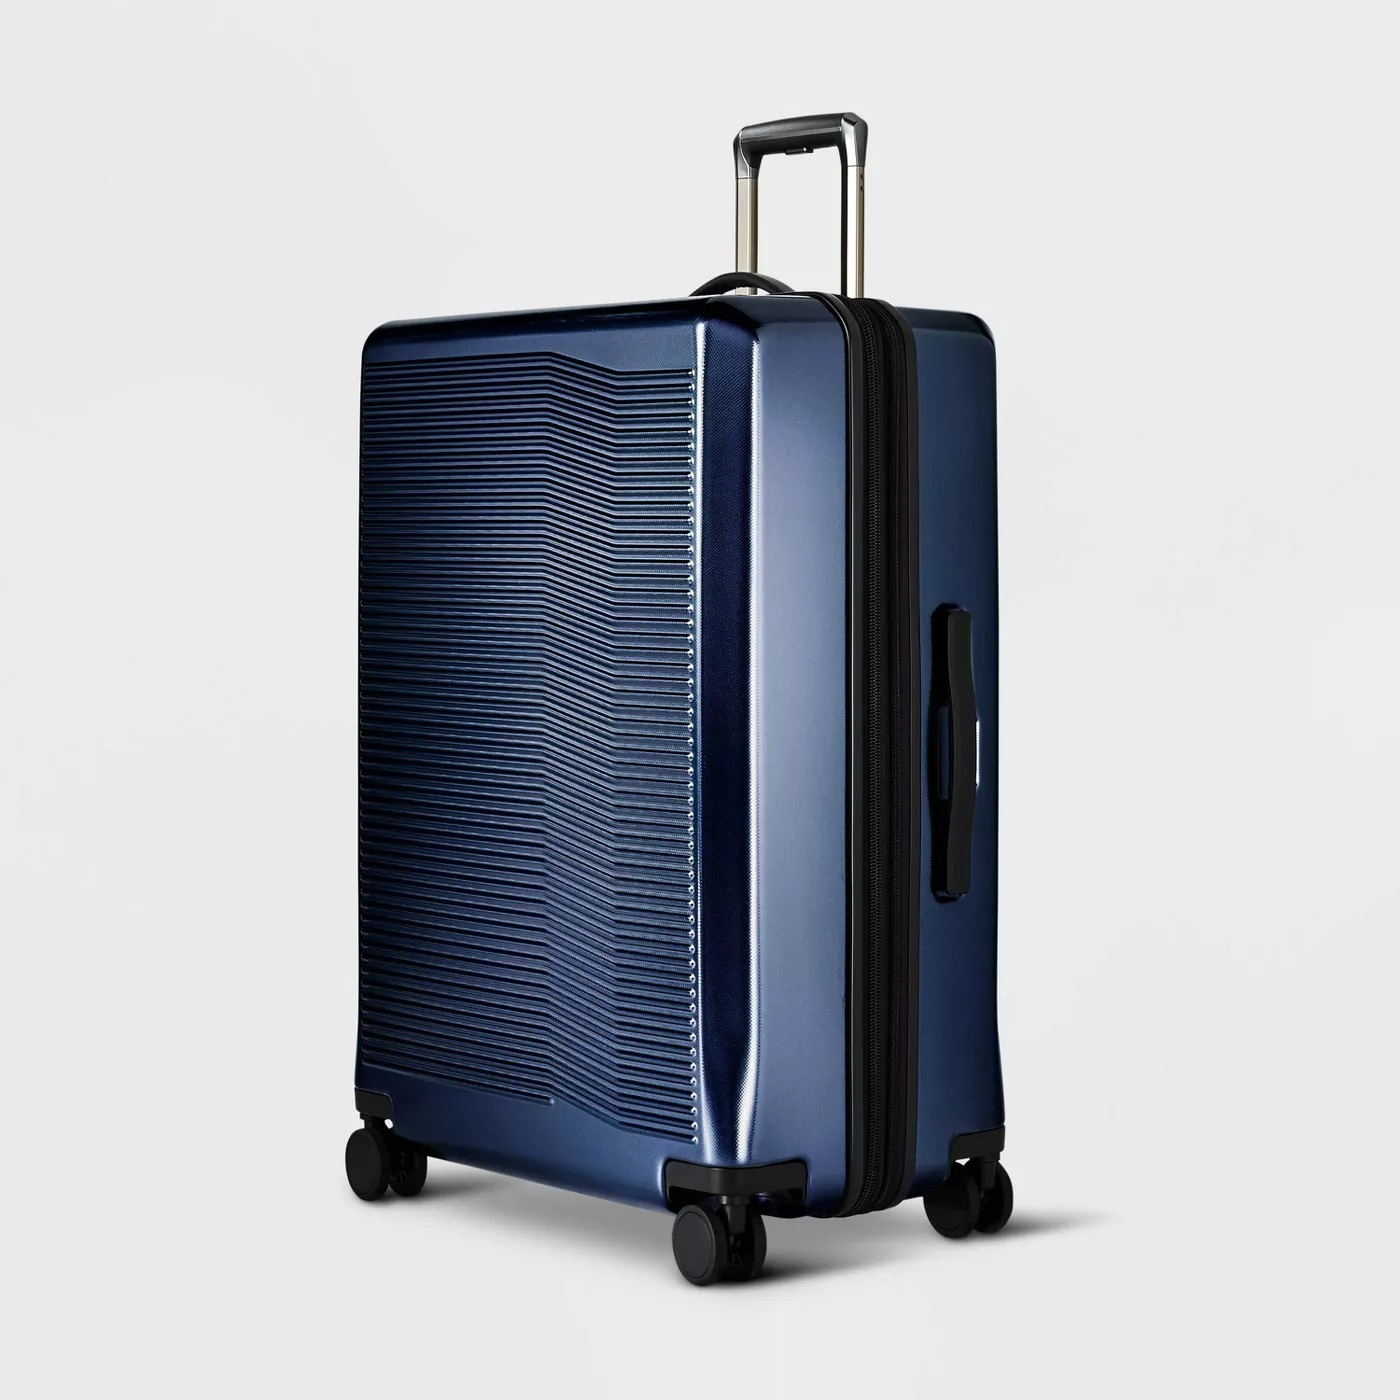 Target Open Story Hardside 29-Inch Rolling Suitcase, best rolling suitcases